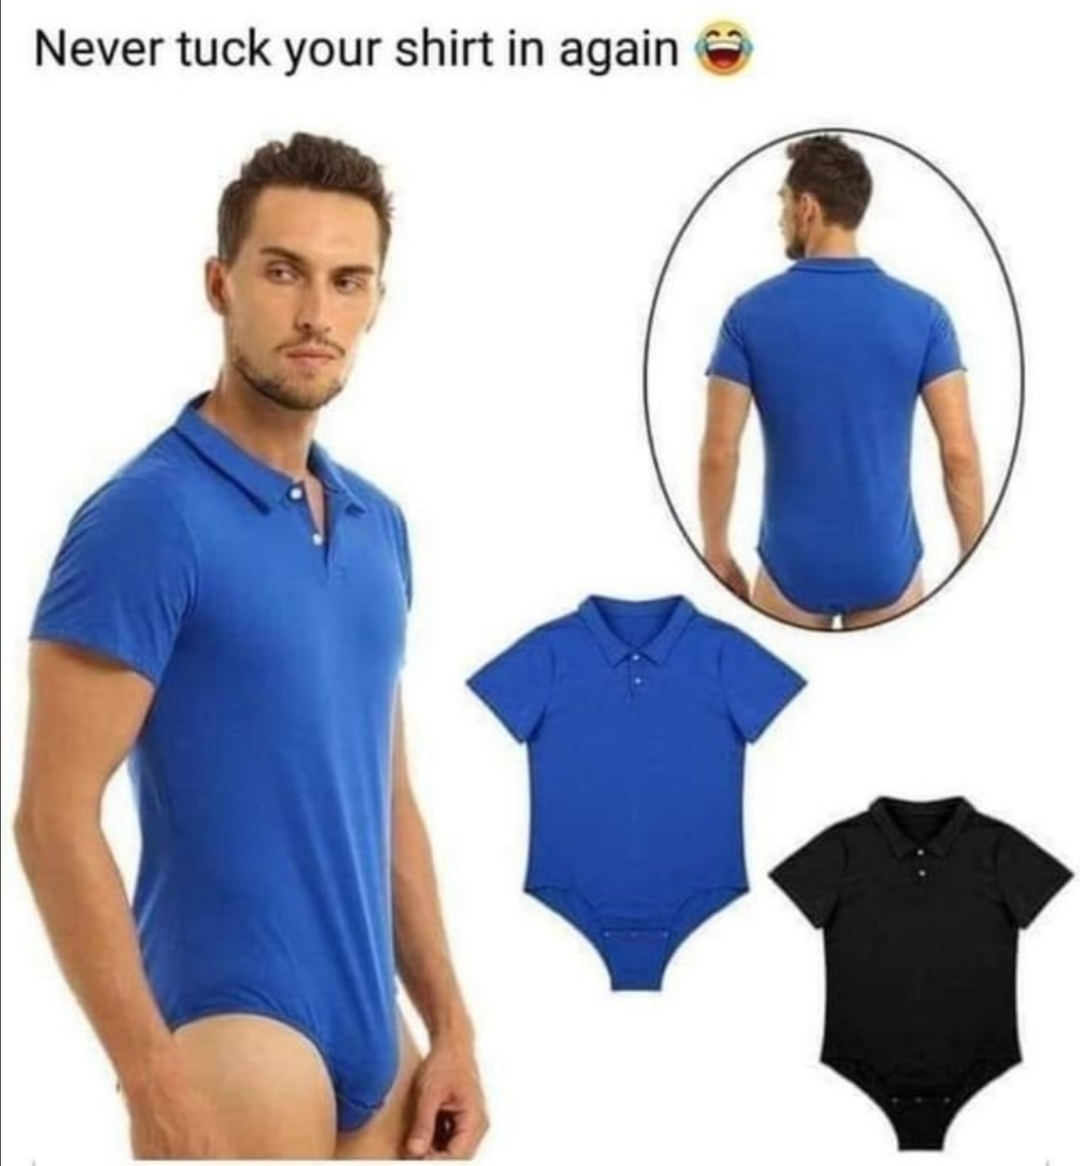 Never tuck your shirt in again